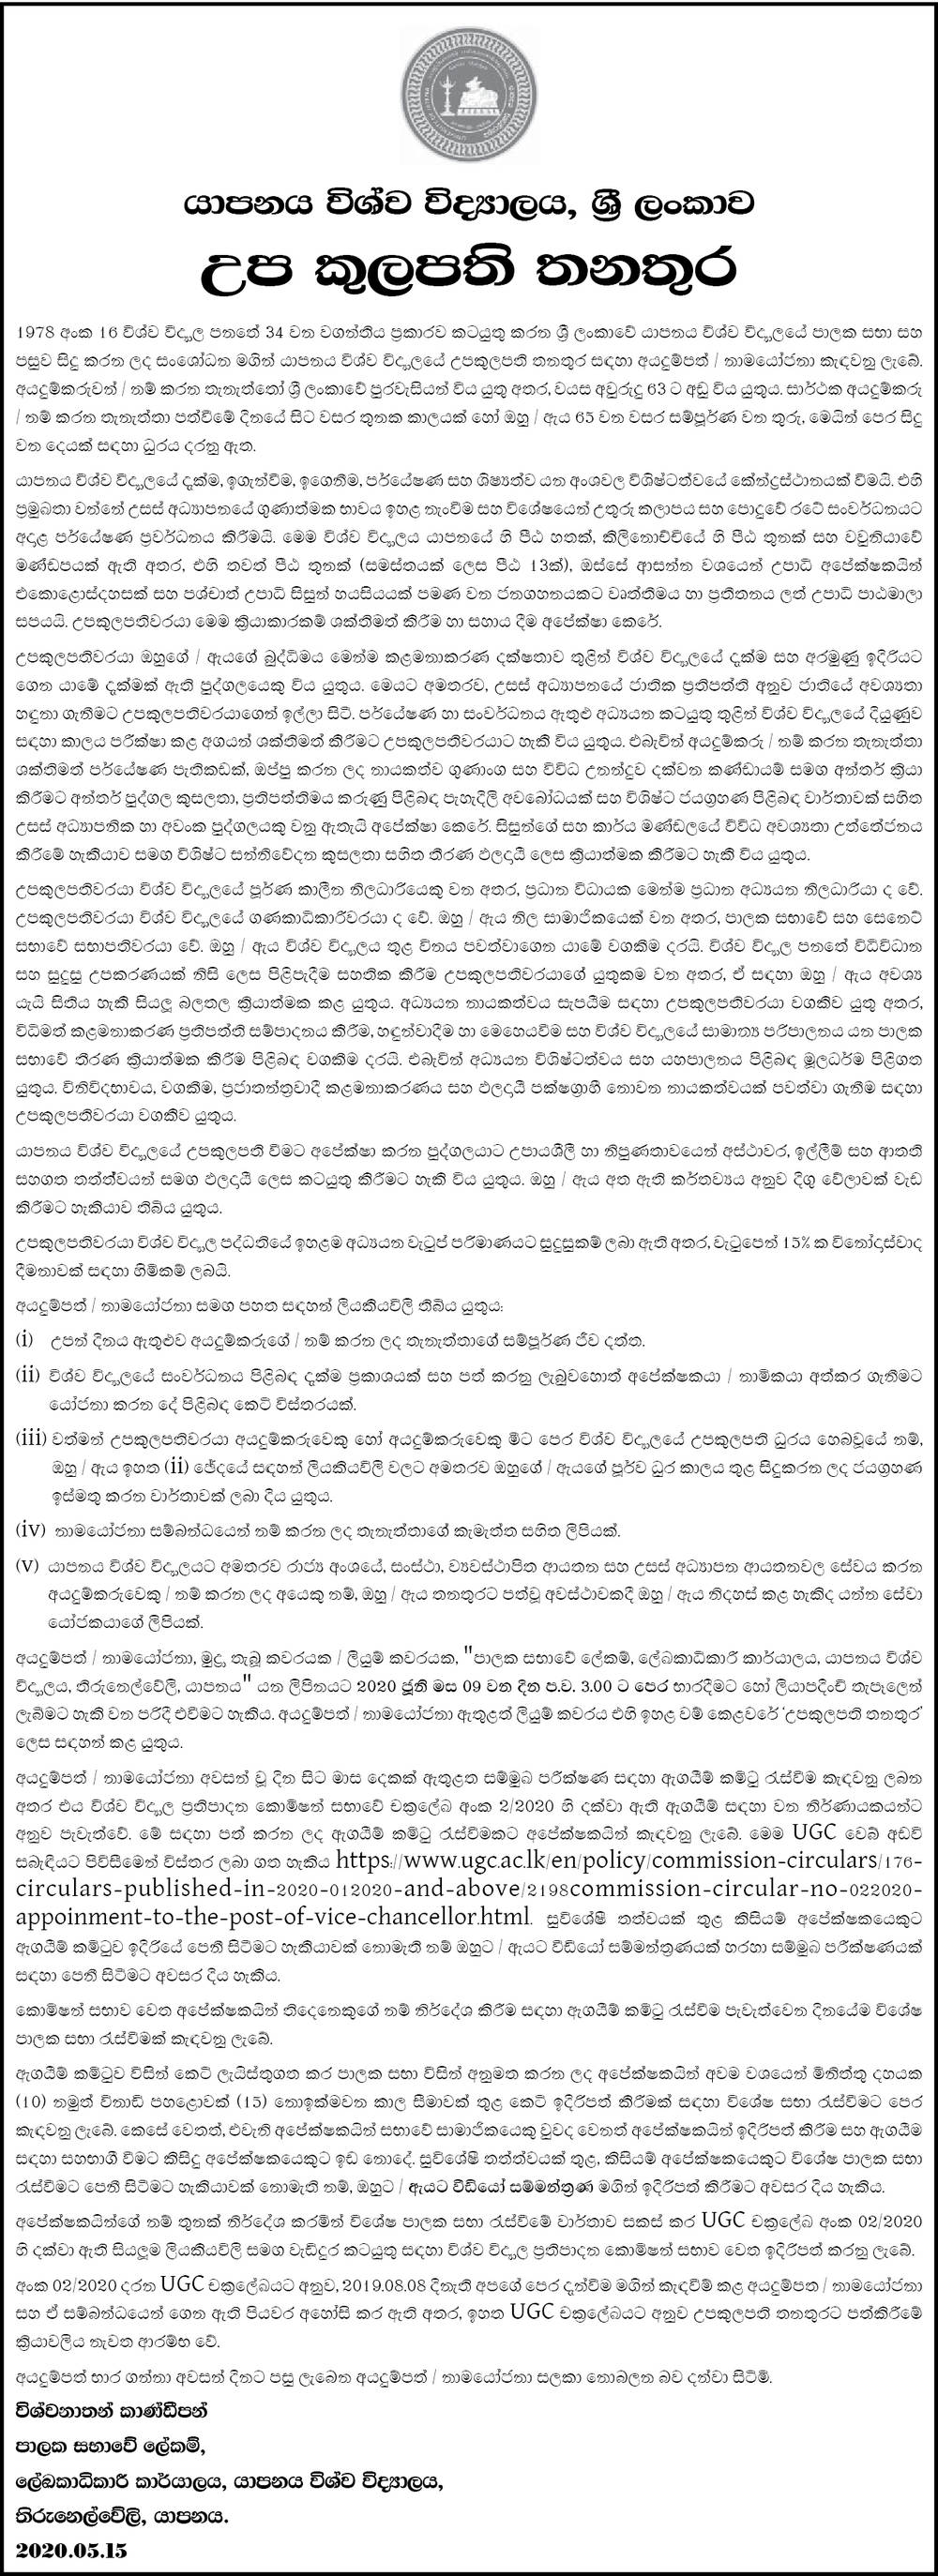 Vice Chancellor - University of Jaffna